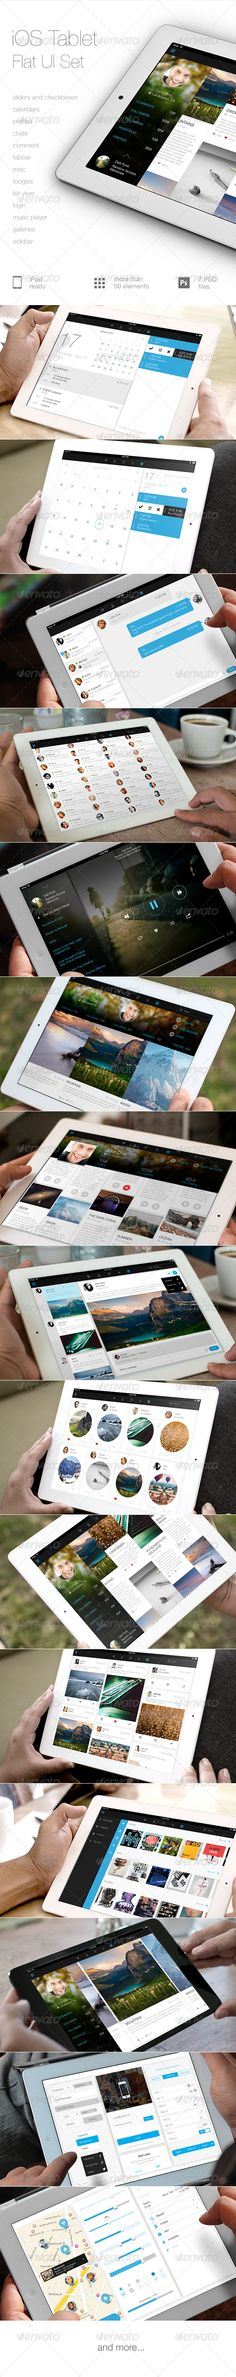 iOS Tablet Flat UI Set - User Interfaces Web Elements